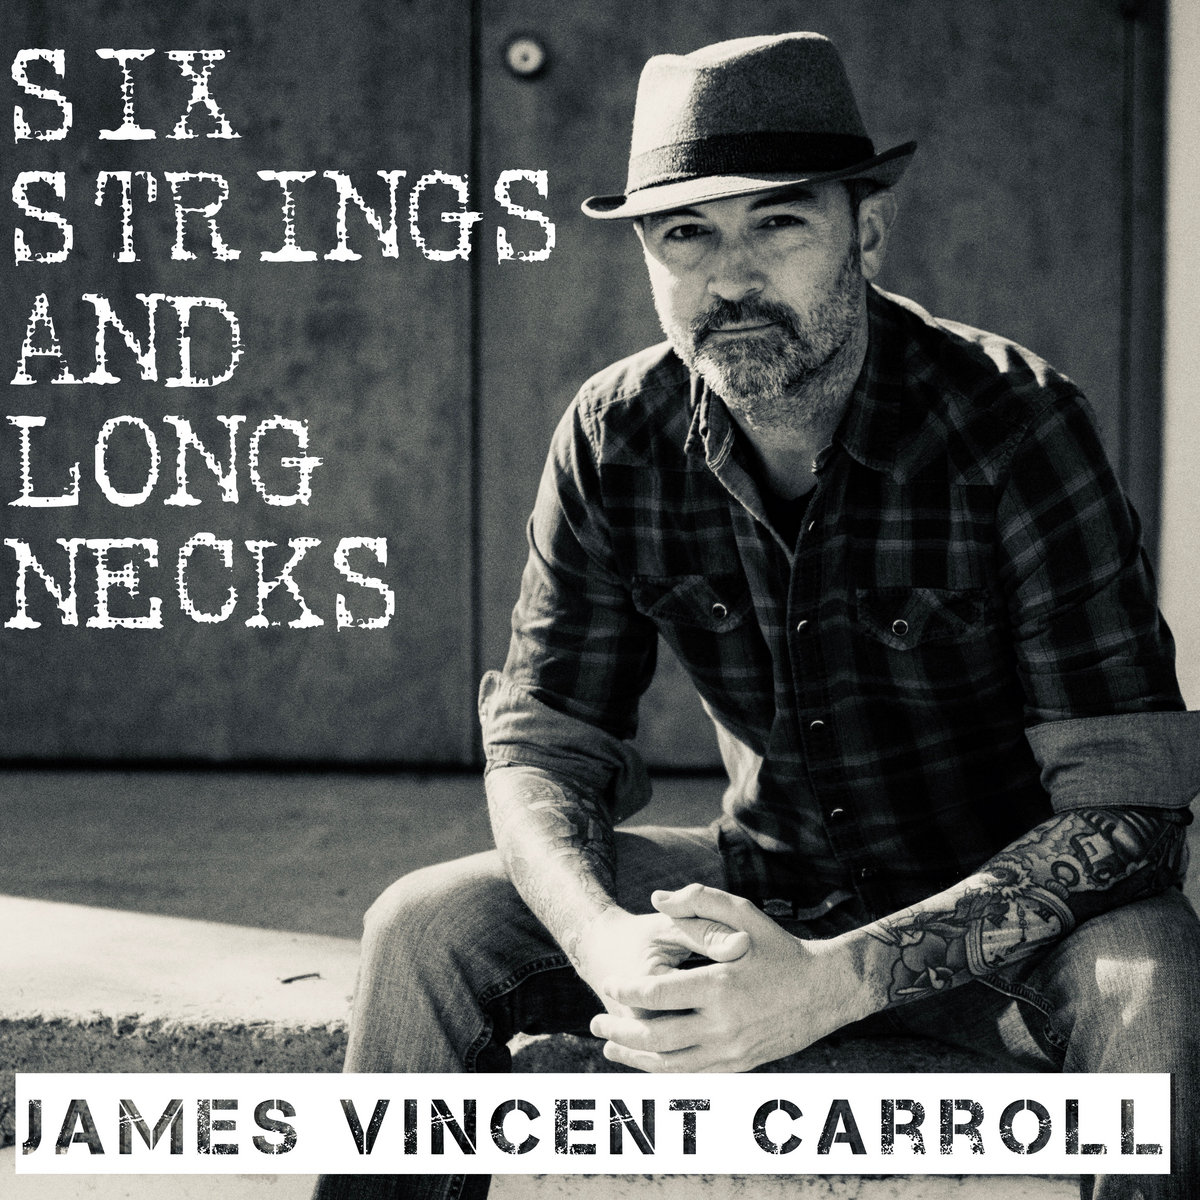 Six Strings and Longnecks by James Vincent Carroll